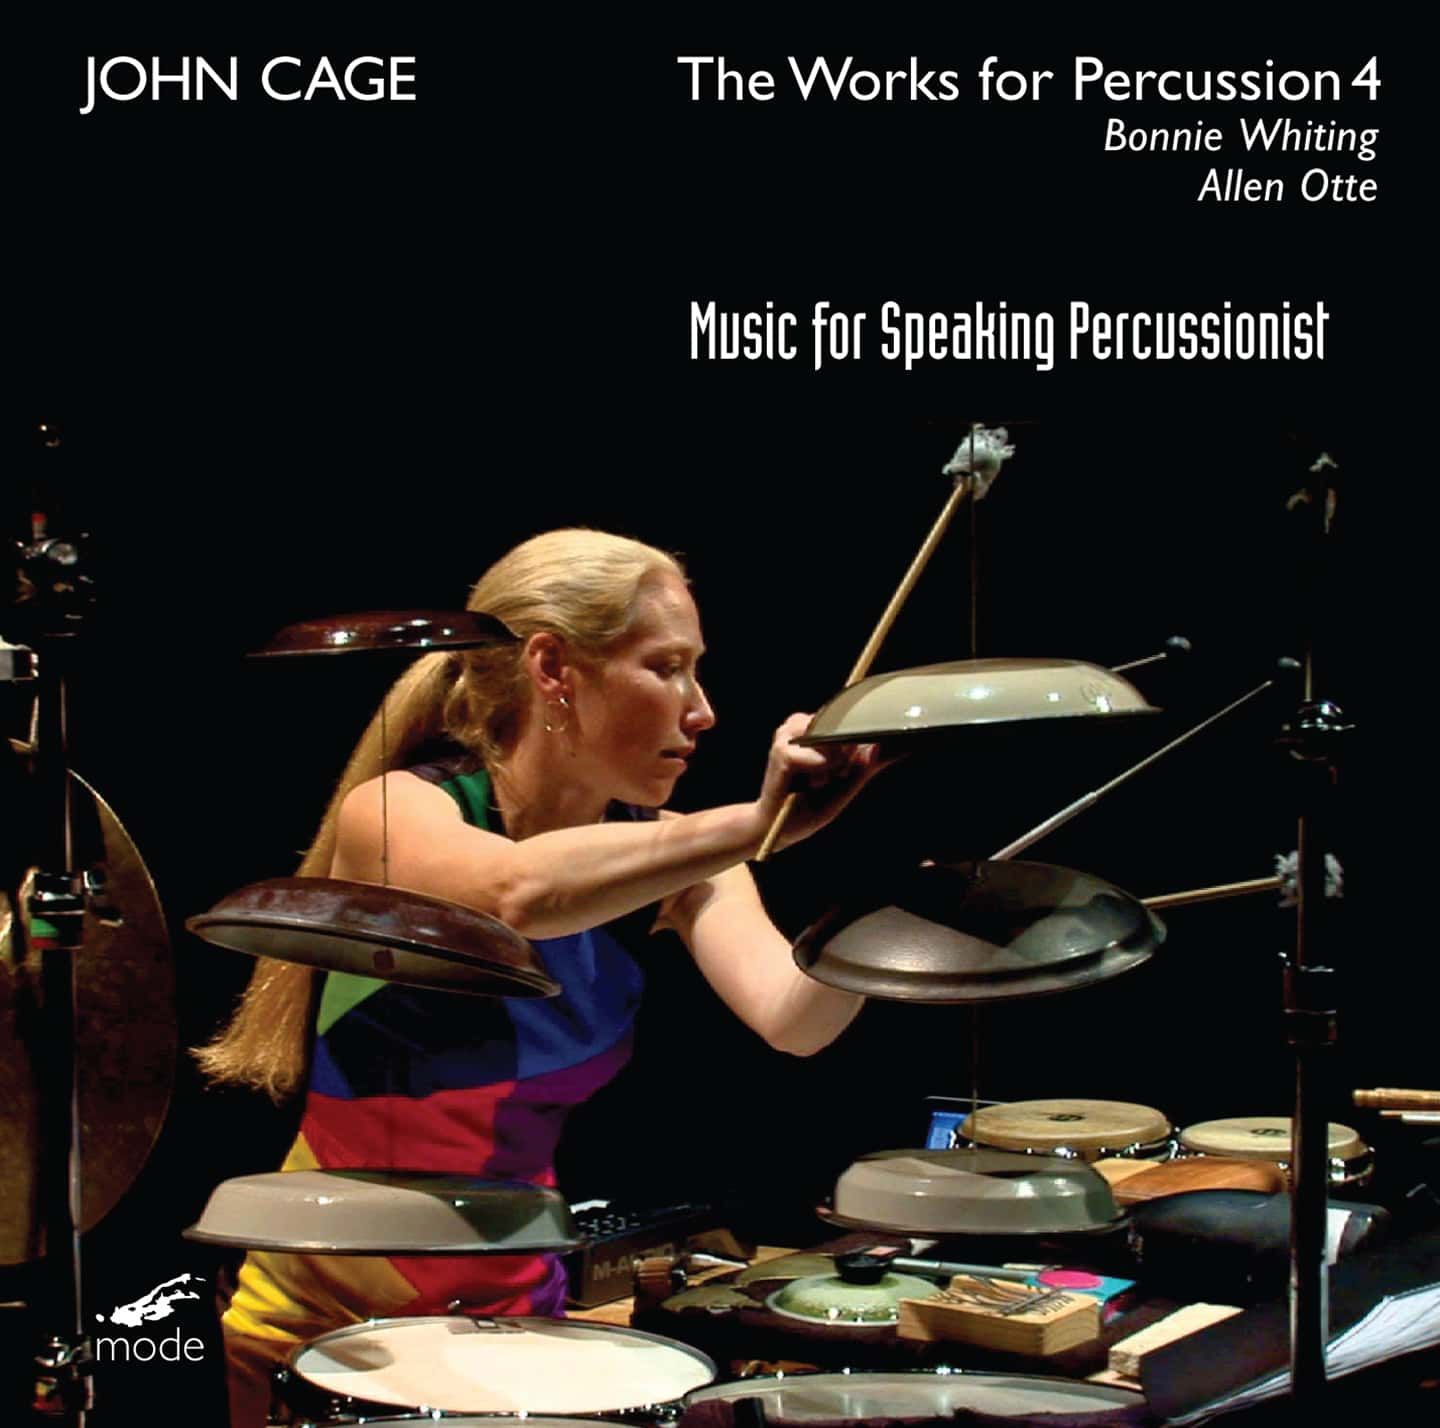 The Works for Percussion 4 – CD